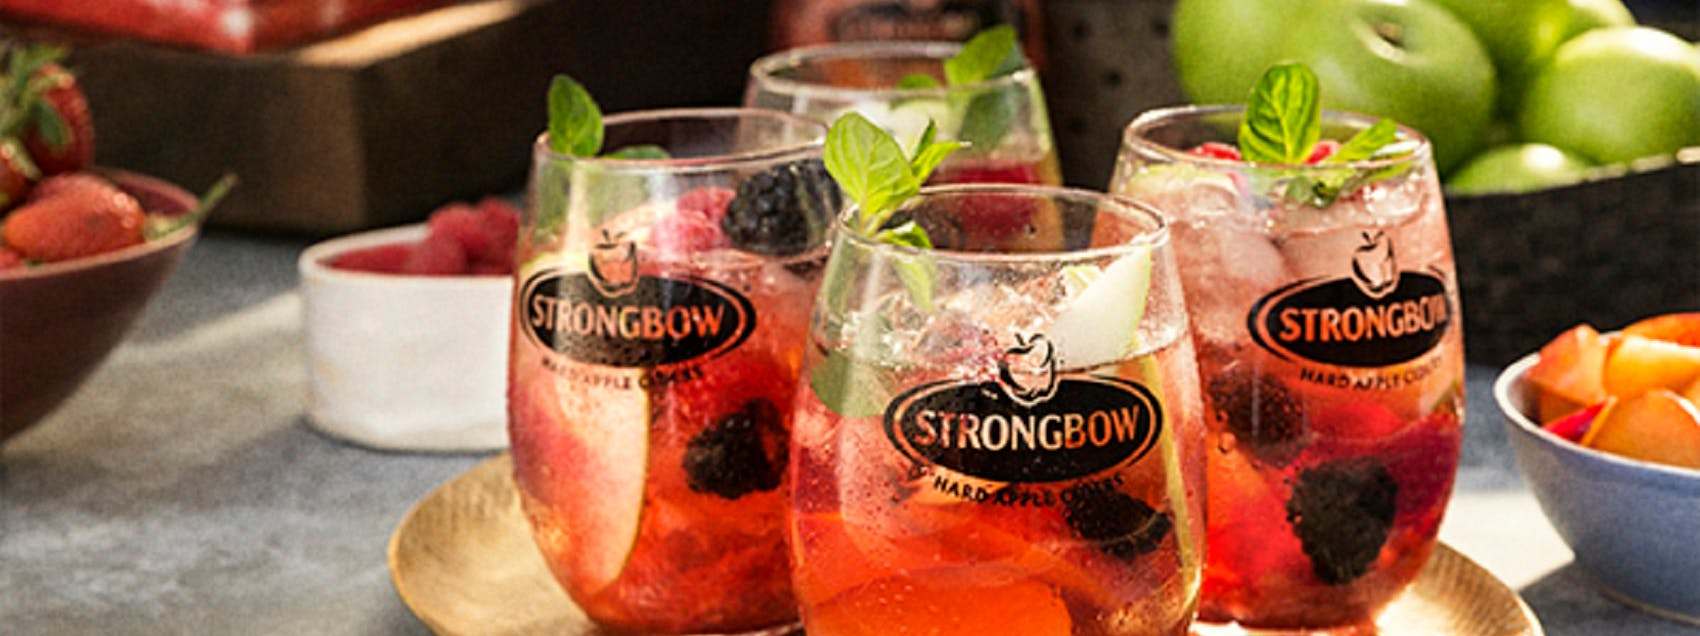 Strongbow Cherry Blossom Sangria